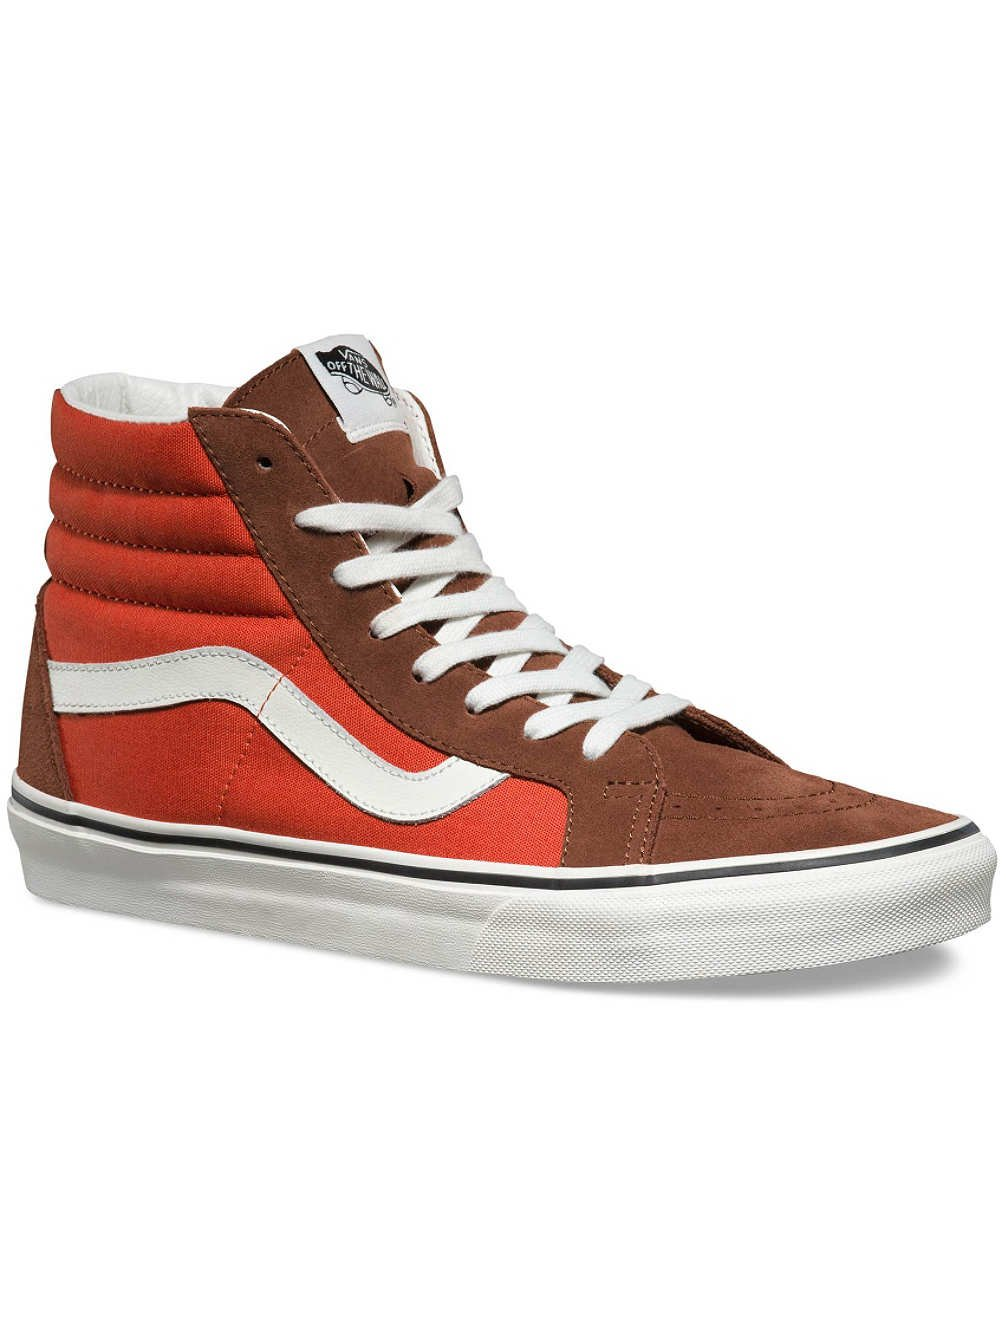 01a987413f Galleon - Vans Sk8-Hi Reissue 2 Tone Cappuccino Burnt Ochre Ankle-High  Canvas Skateboarding Shoe - 12M 10.5M